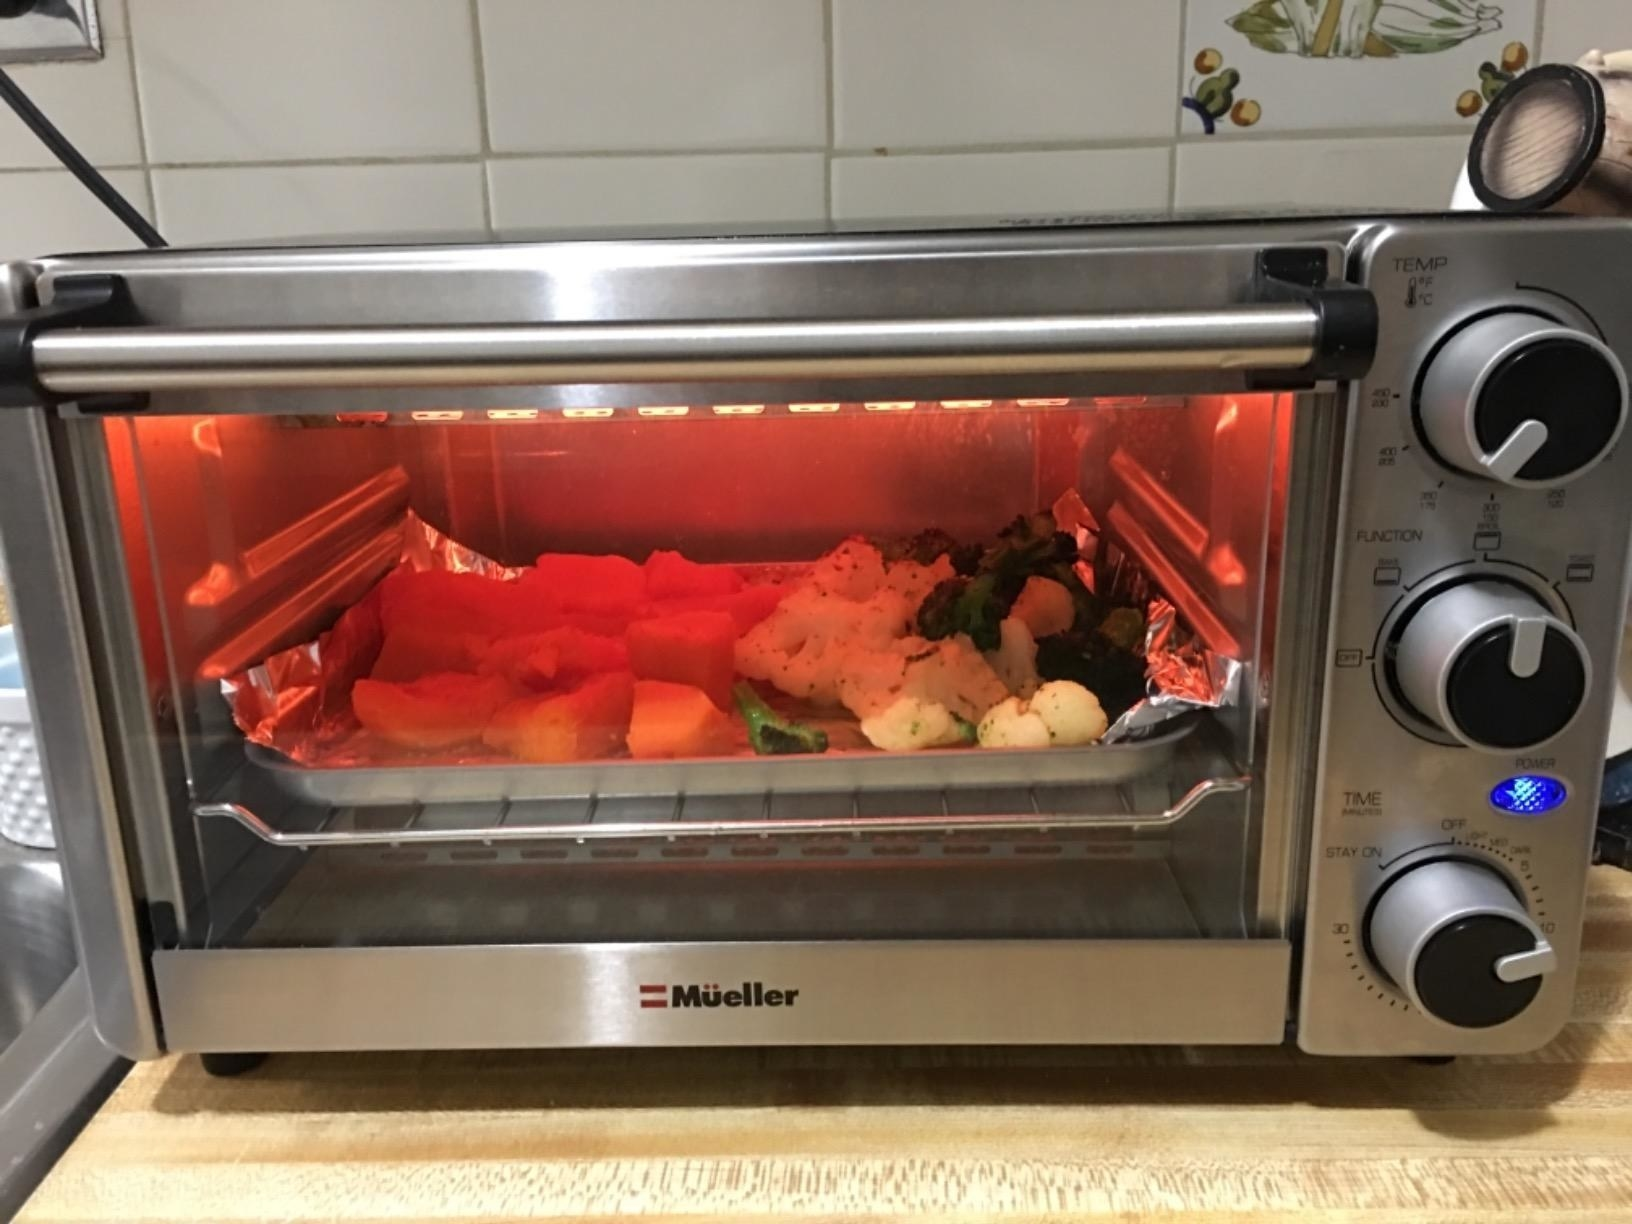 A reviewer image of some vegetables cooking inside the toaster oven